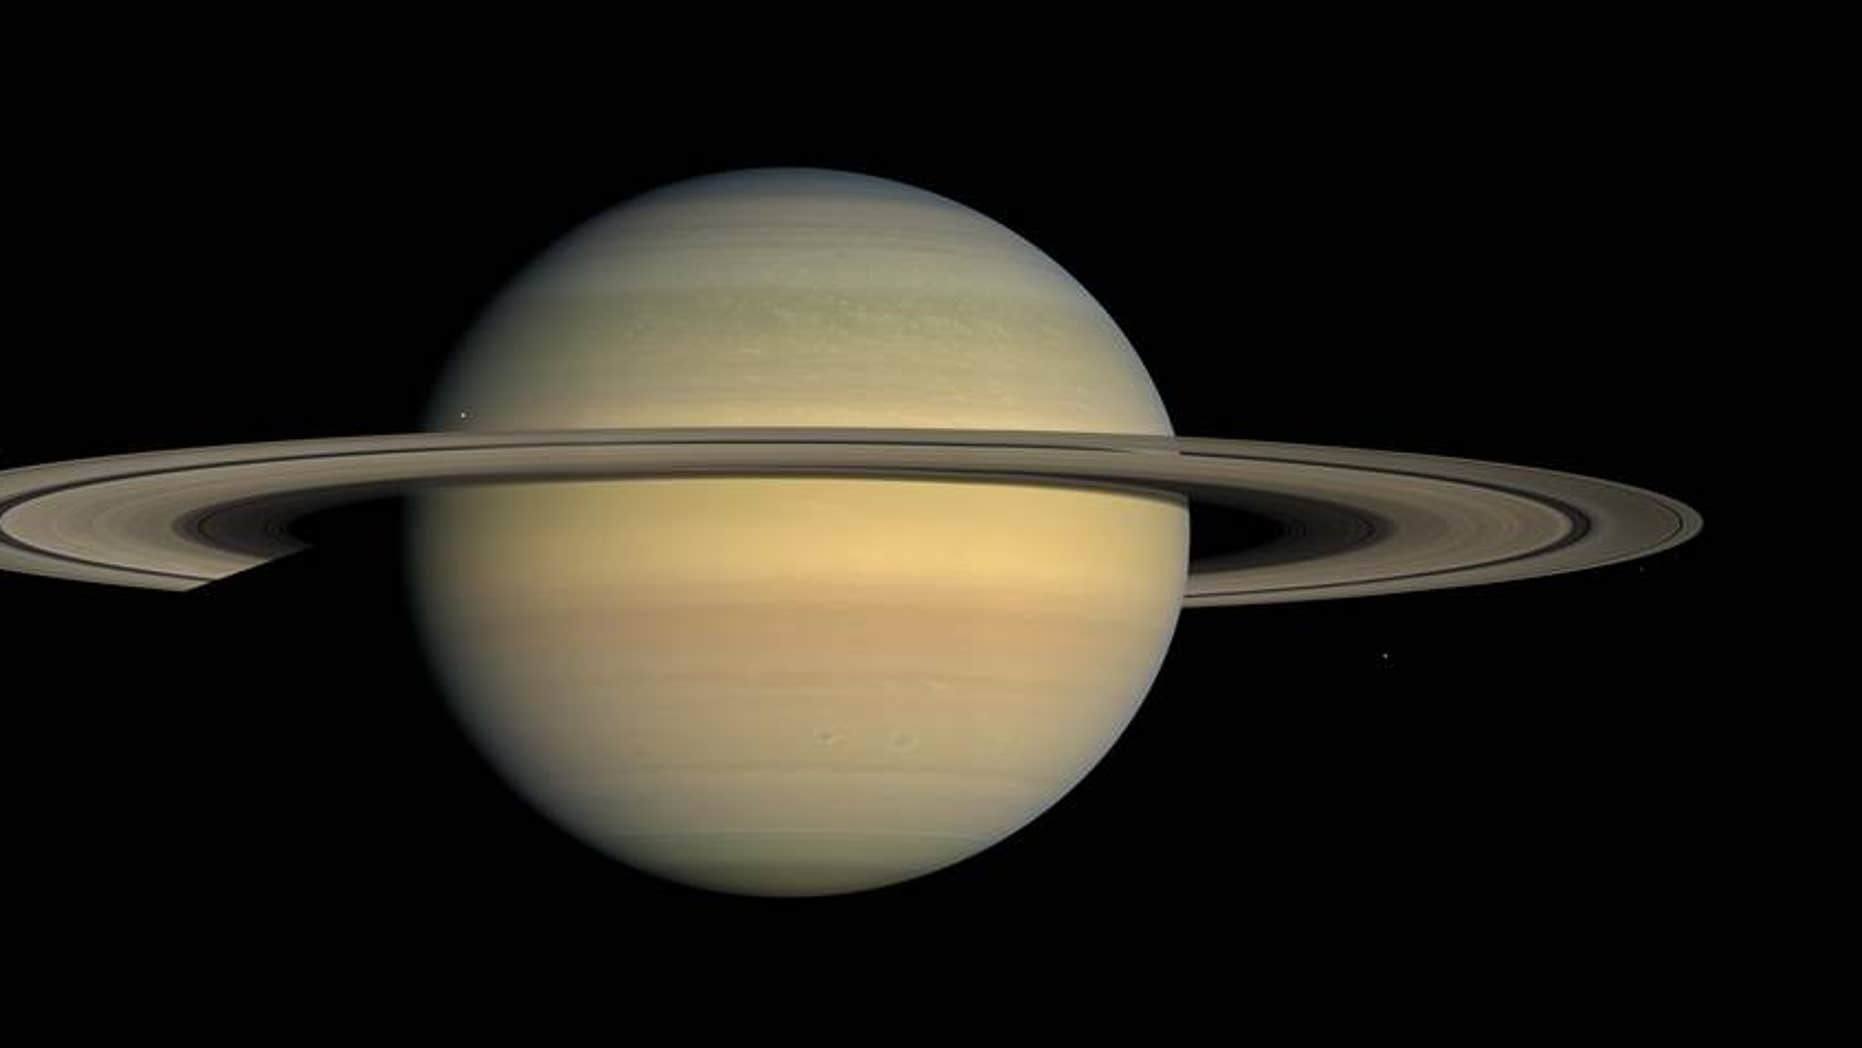 Saturn as seen by NASA's Cassini spacecraft in 2008 (Credits: NASA/JPL/Space Science Institute).